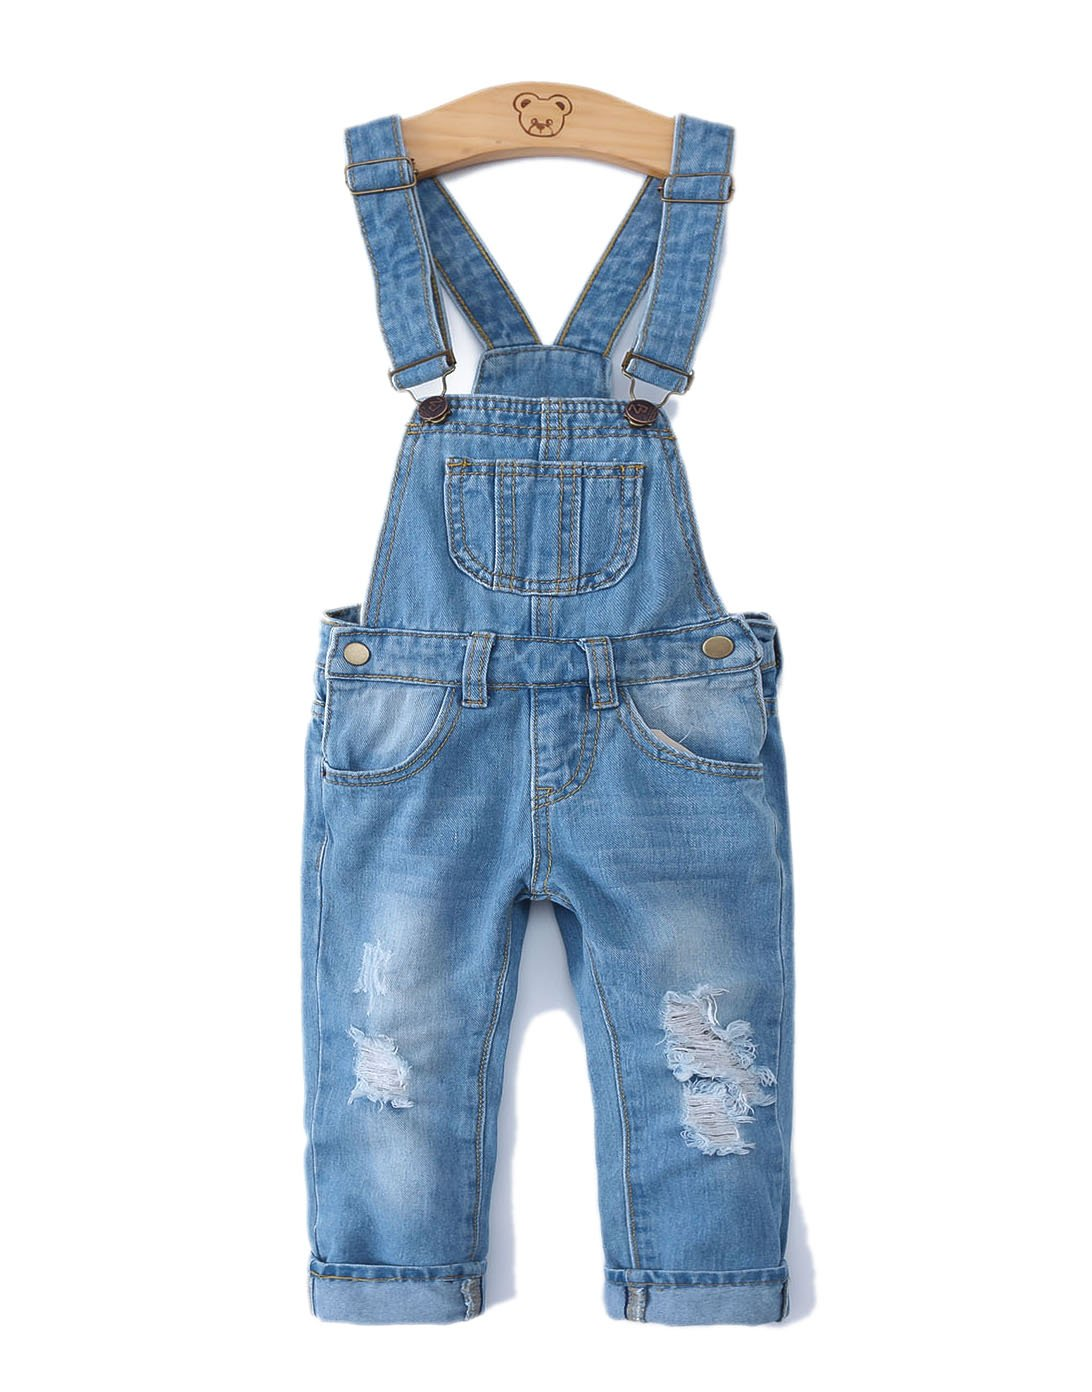 Girls Ripped Holes Stretchy Big Bibs Soft Jeans Overalls,Blue,3T by Kidscool